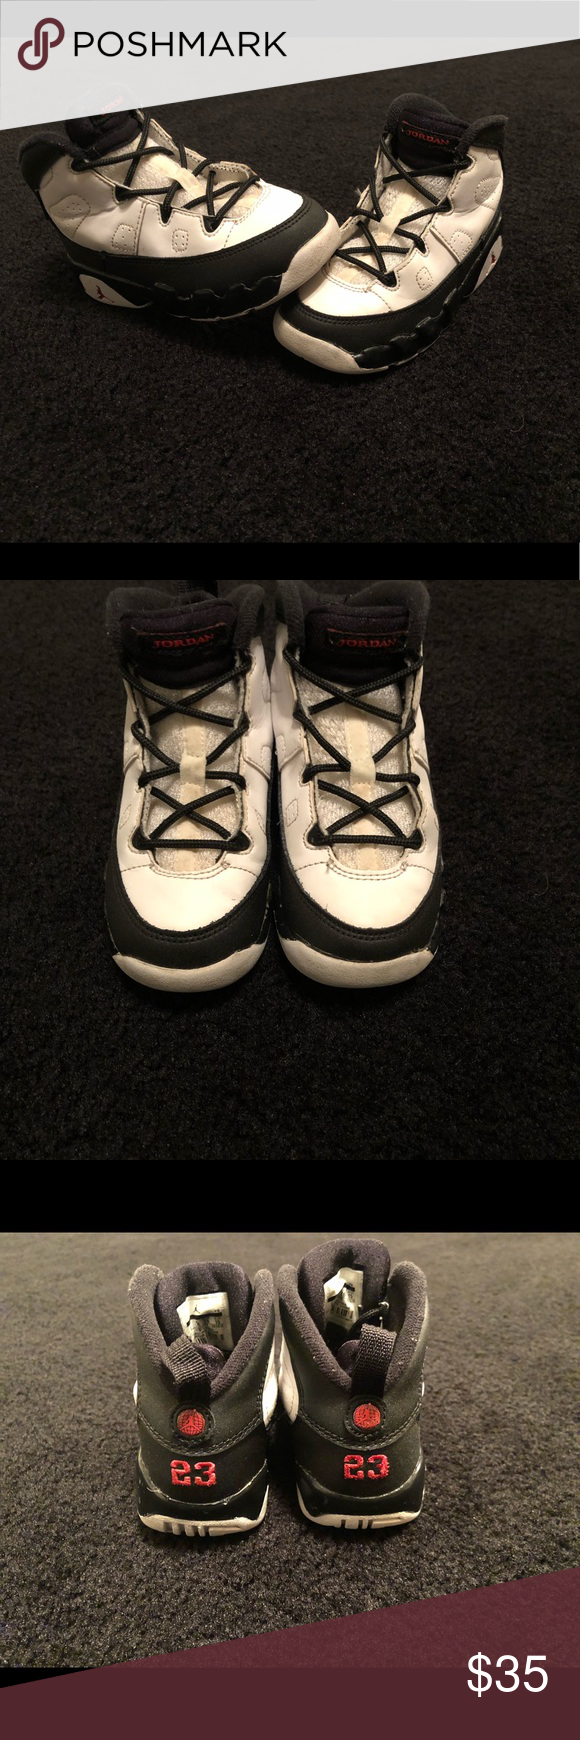 fc859e992efee1 Nike Air Jordan Retro 9 Toddler Size 9C Shoes Nike Air Jordan Retro 9  Toddler Size